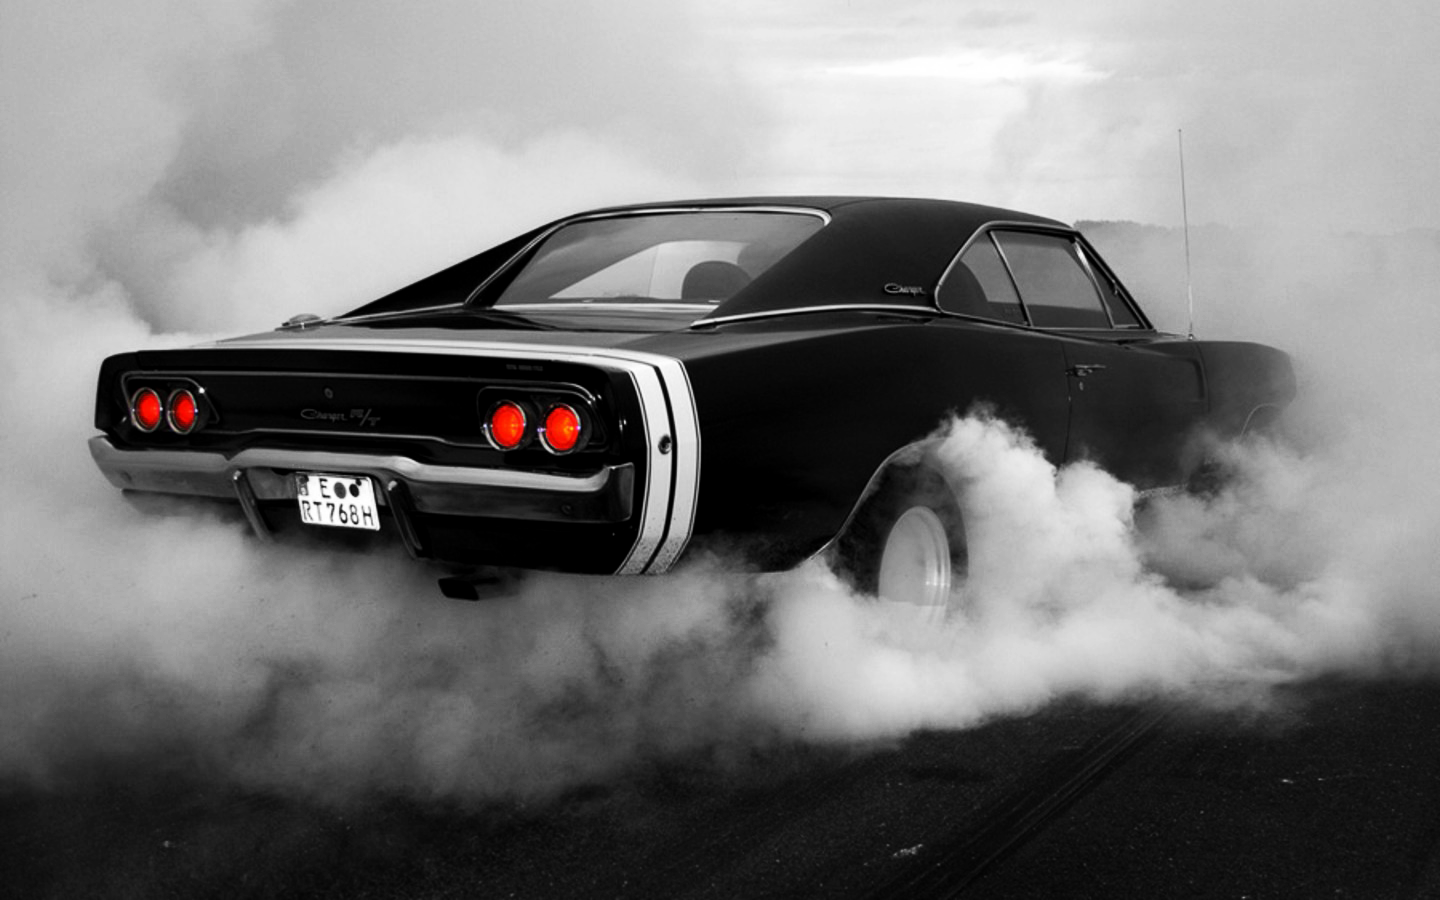 Best Dodge Charger Wallpapers in High Quality, Shu Tumlin, 601.26 Kb